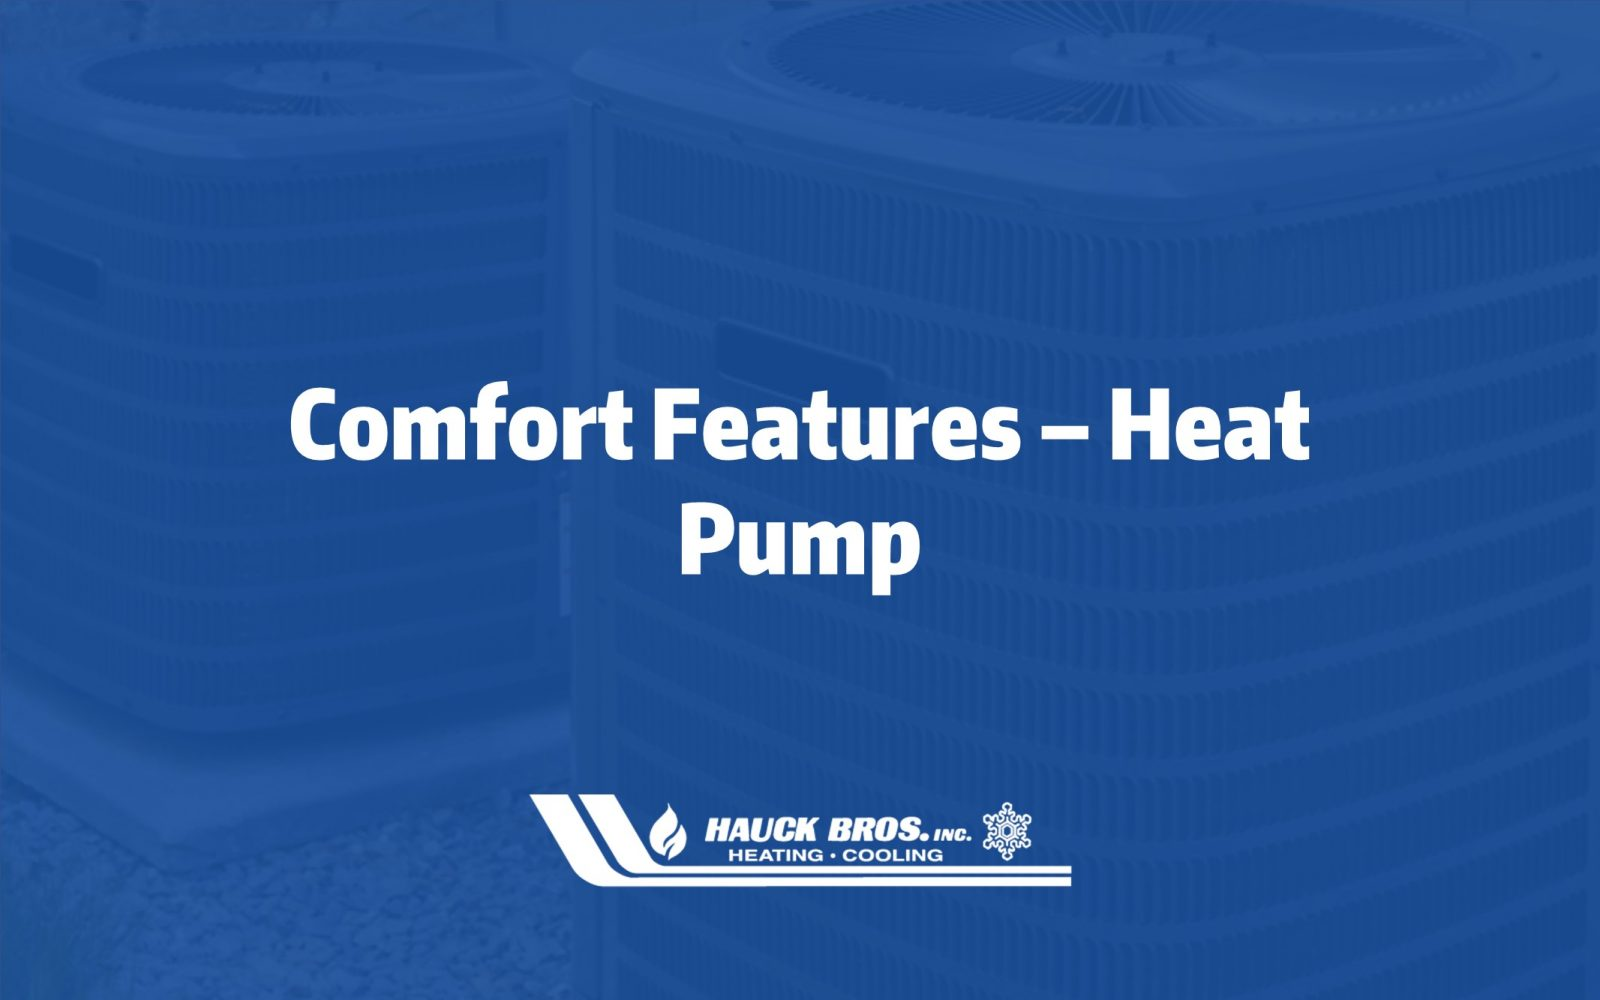 heat pump comfort features